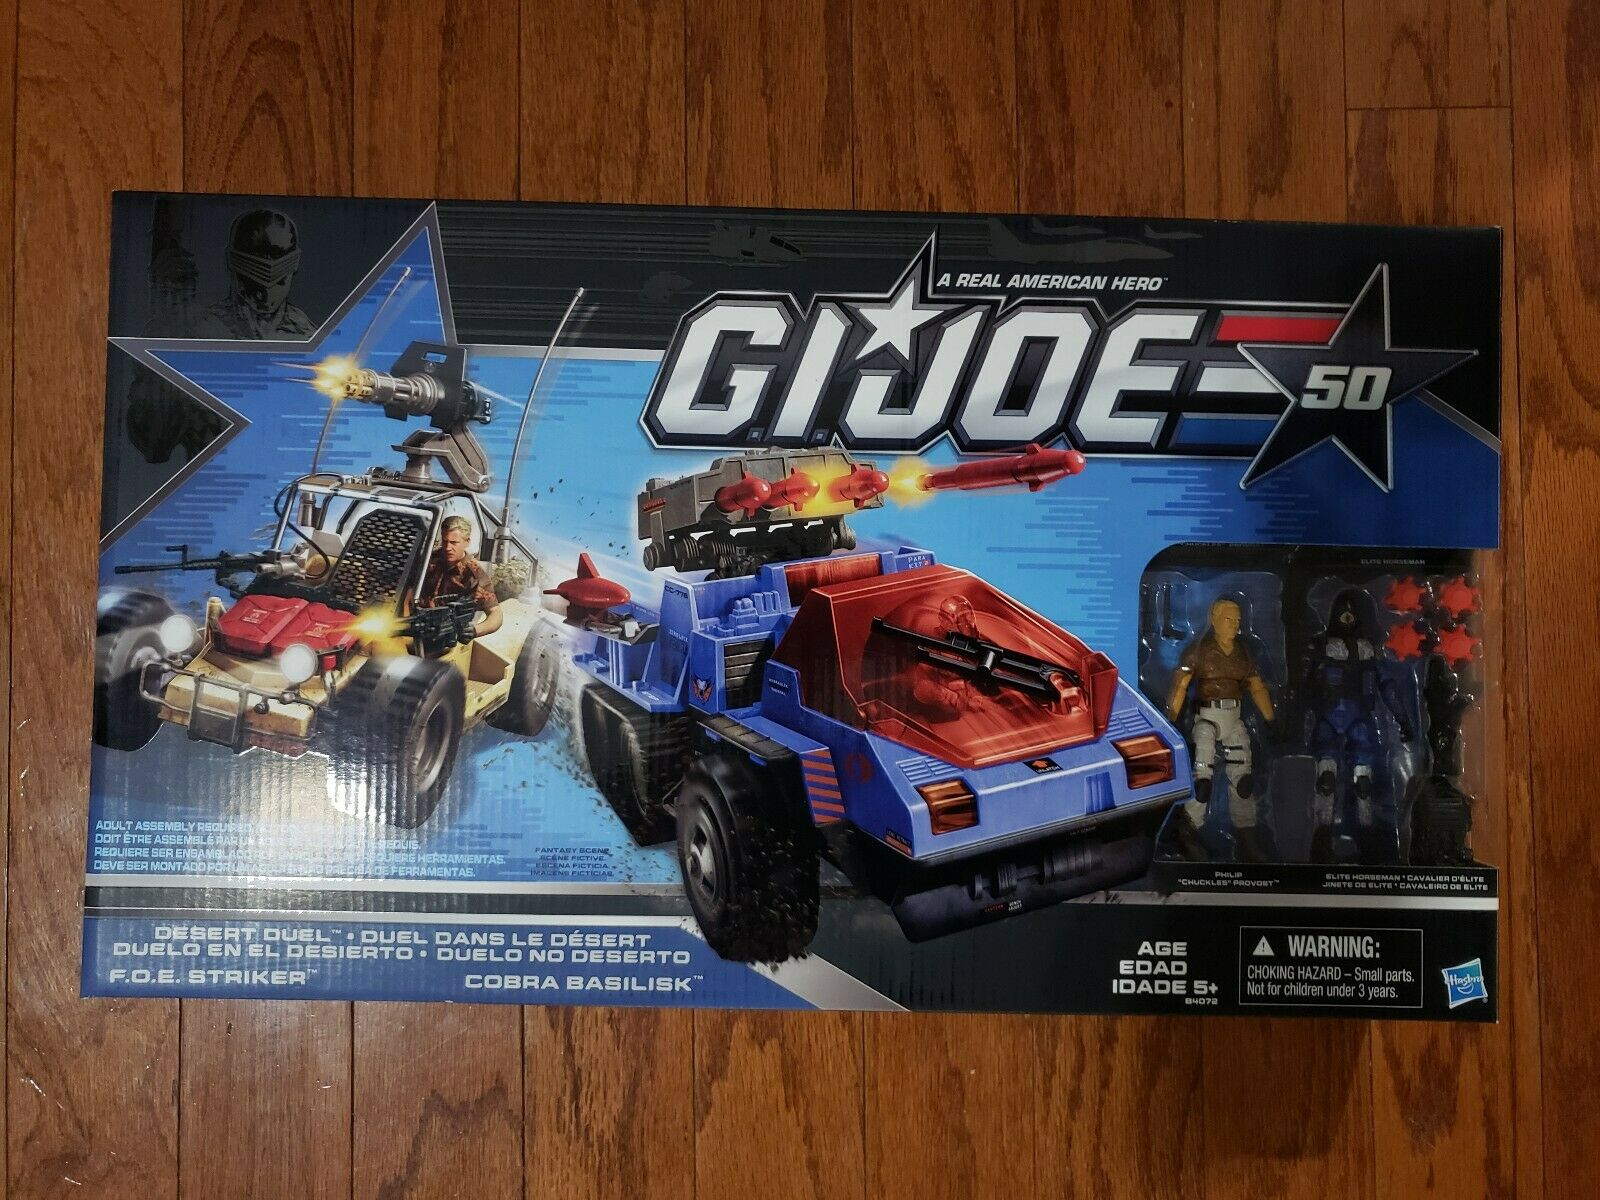 2015 GI JOE 50TH ANNIVERSARY DESERT DUEL MISB G.I. JOE